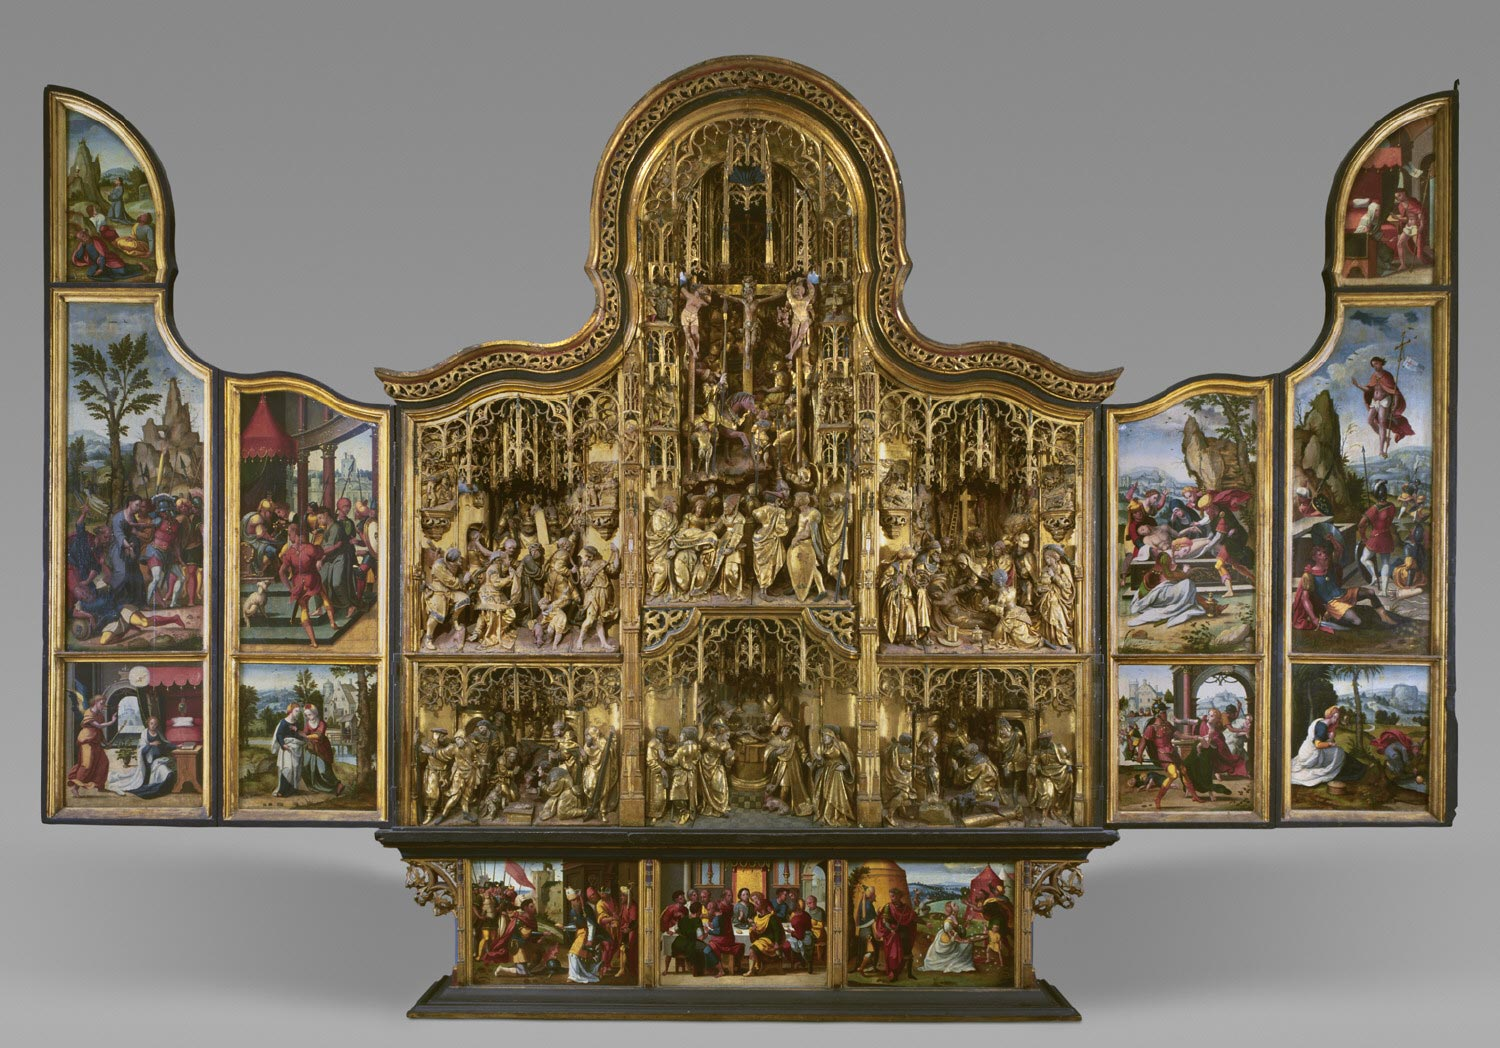 Altarpiece with Scenes of the Passion